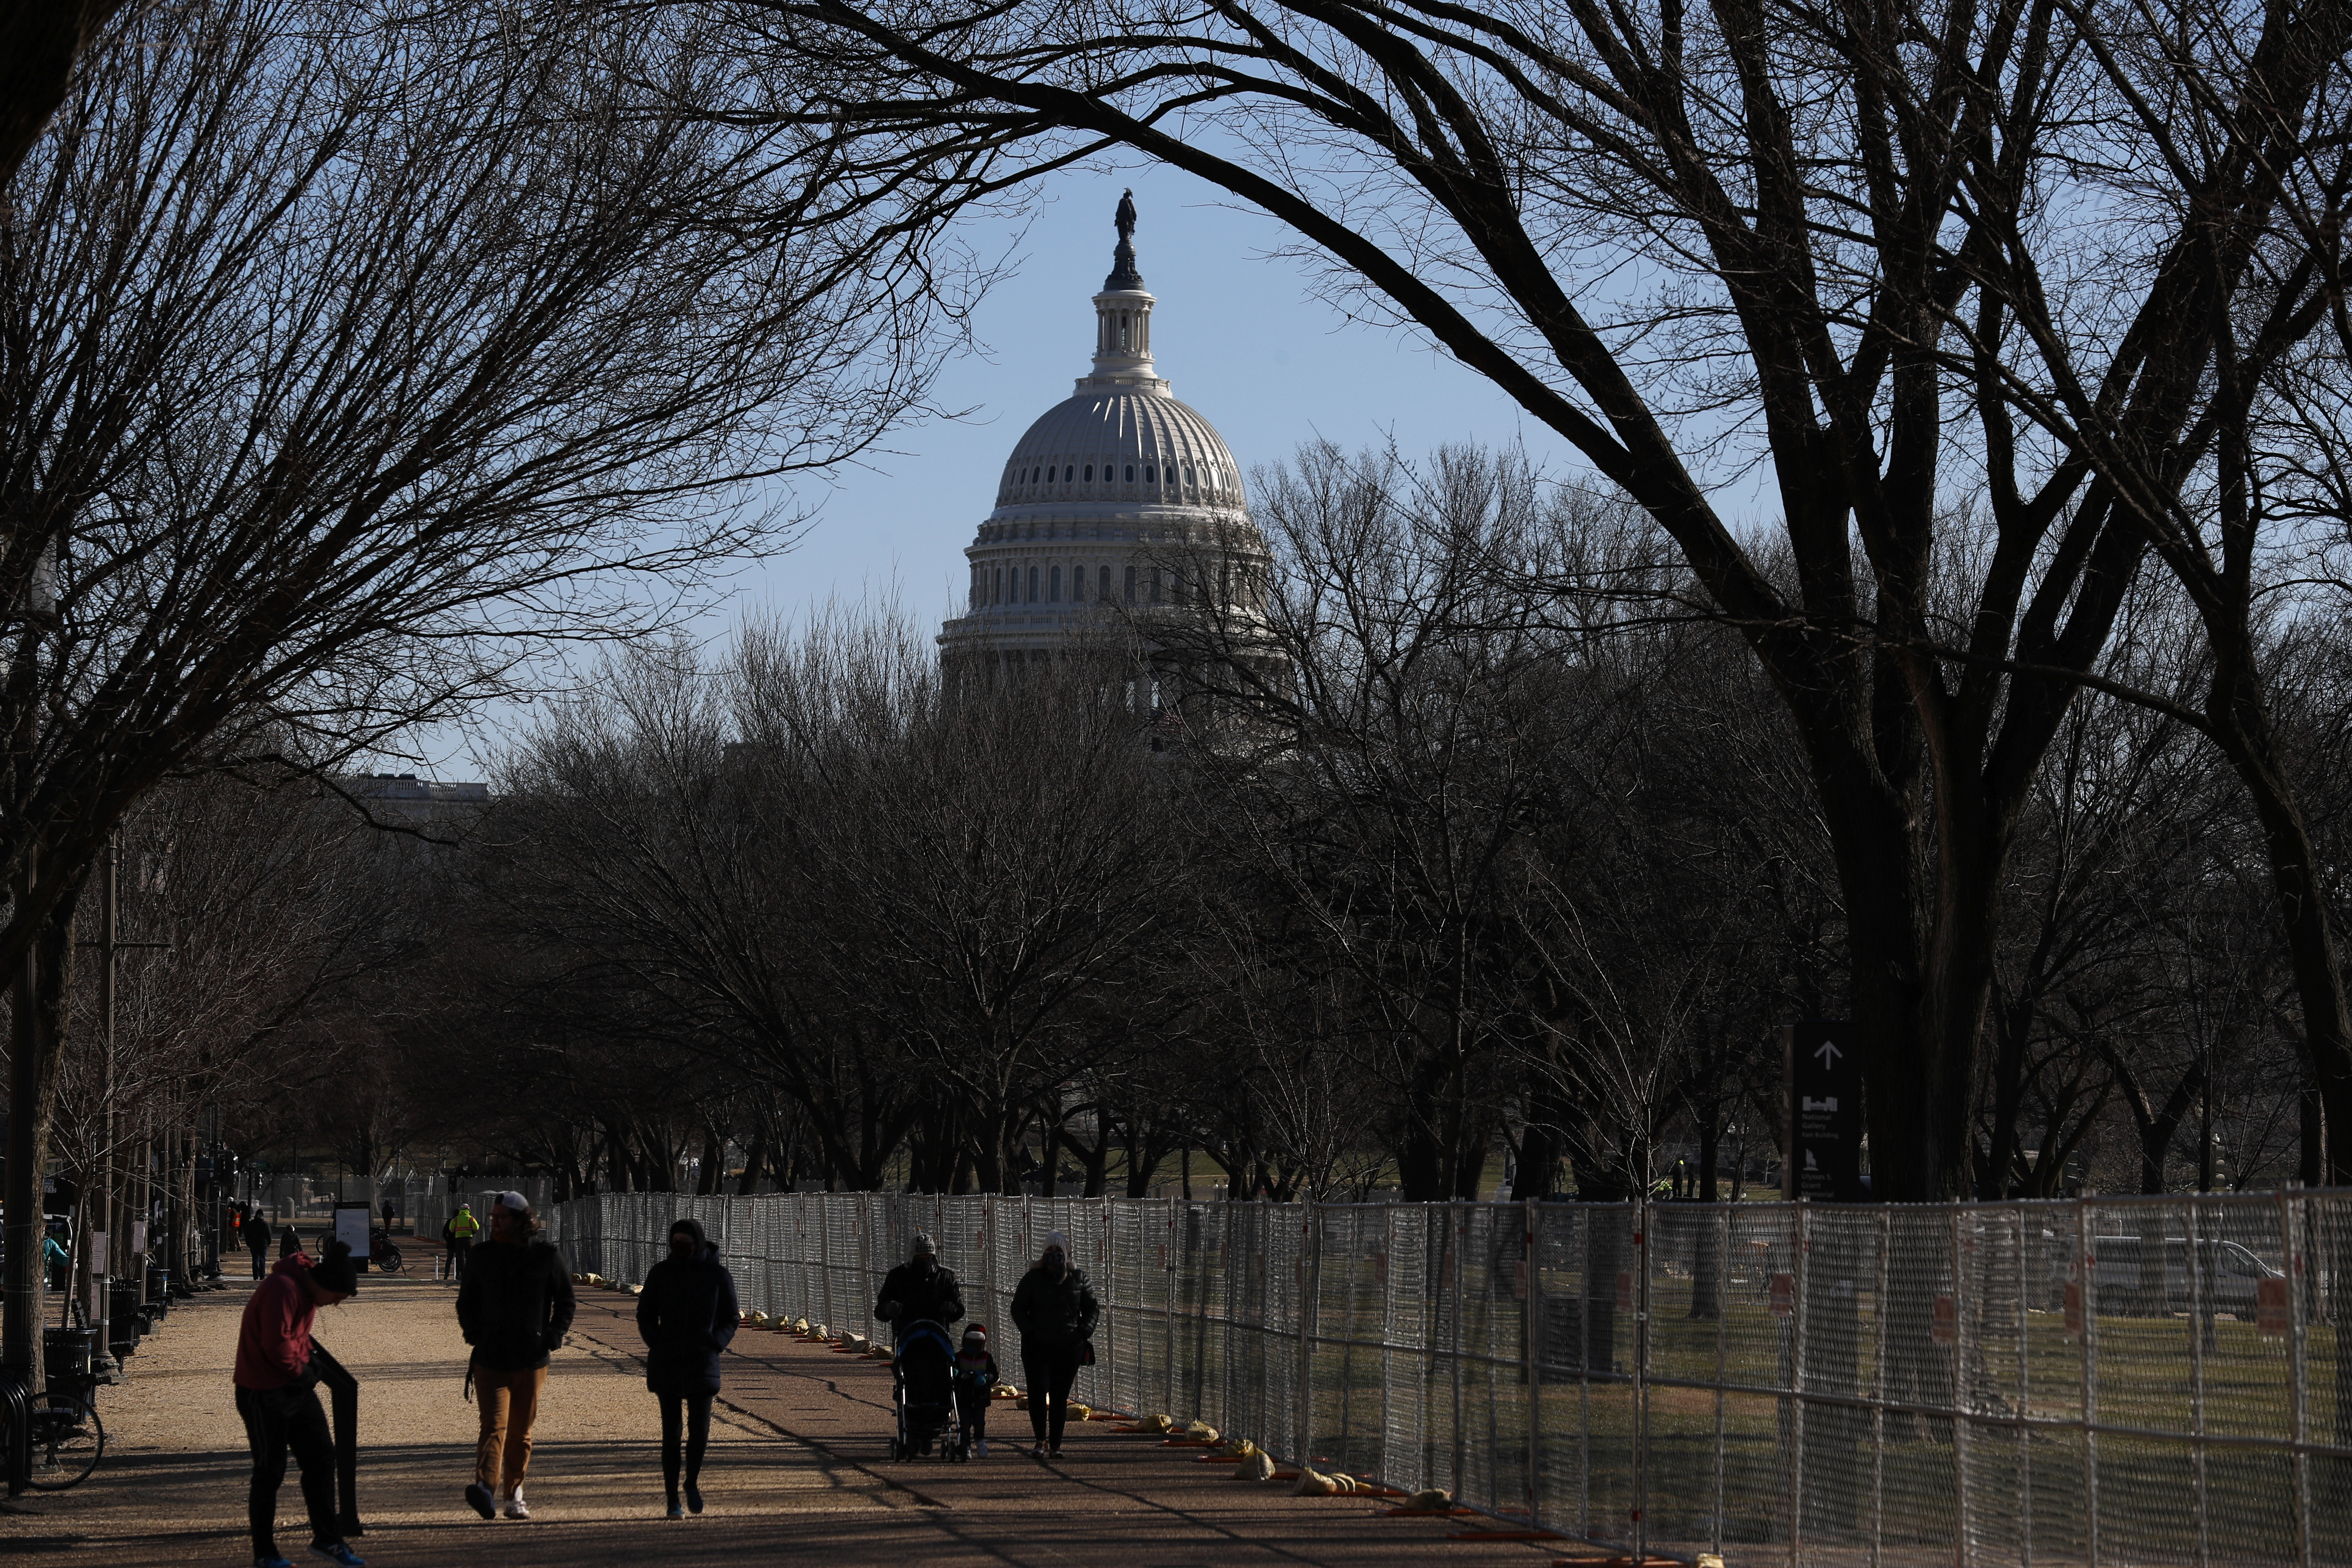 People stroll past a section of the National Mall by the Capitol where workers were still dismantling inauguration installations, after most downtown streets and public spaces had reopened to the public, on Saturday, Jan. 23, 2021 in Washington. Biden is looking to jump-start his first 100 days in office with action and symbolism to reassure a divided and weary public that help is in the offing. Photo: AP